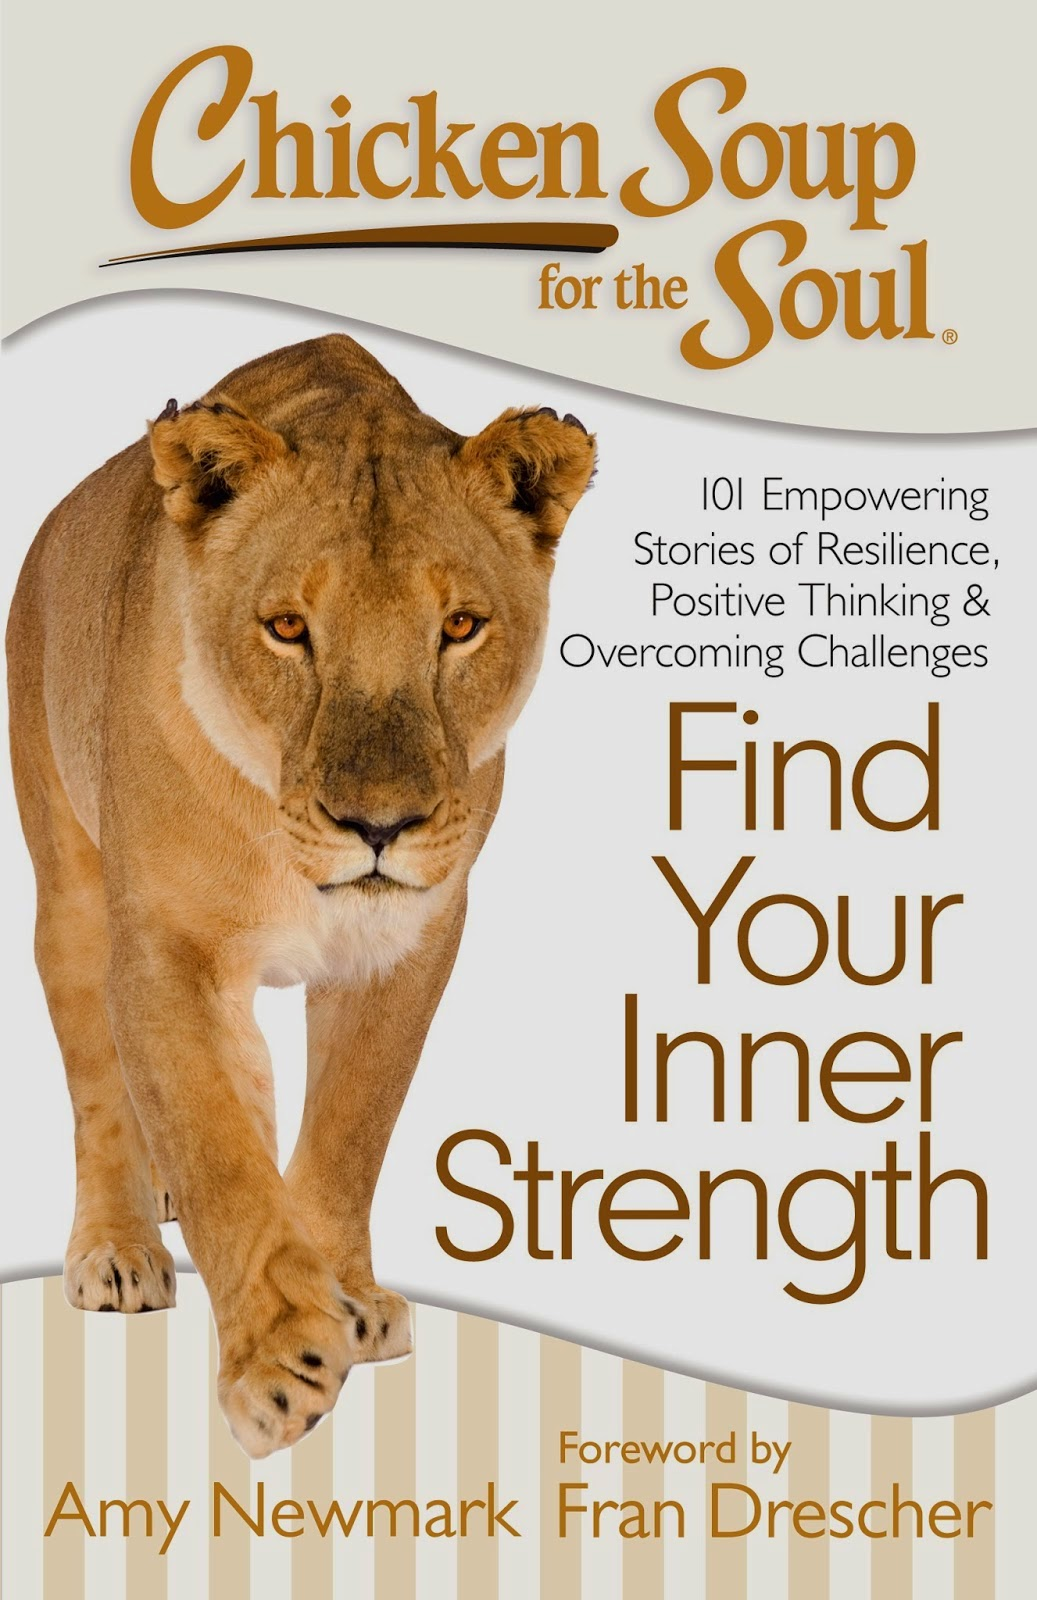 Enter to win Chicken Soup for the Soul: Find Your Inner Strength. Ends 11/29.